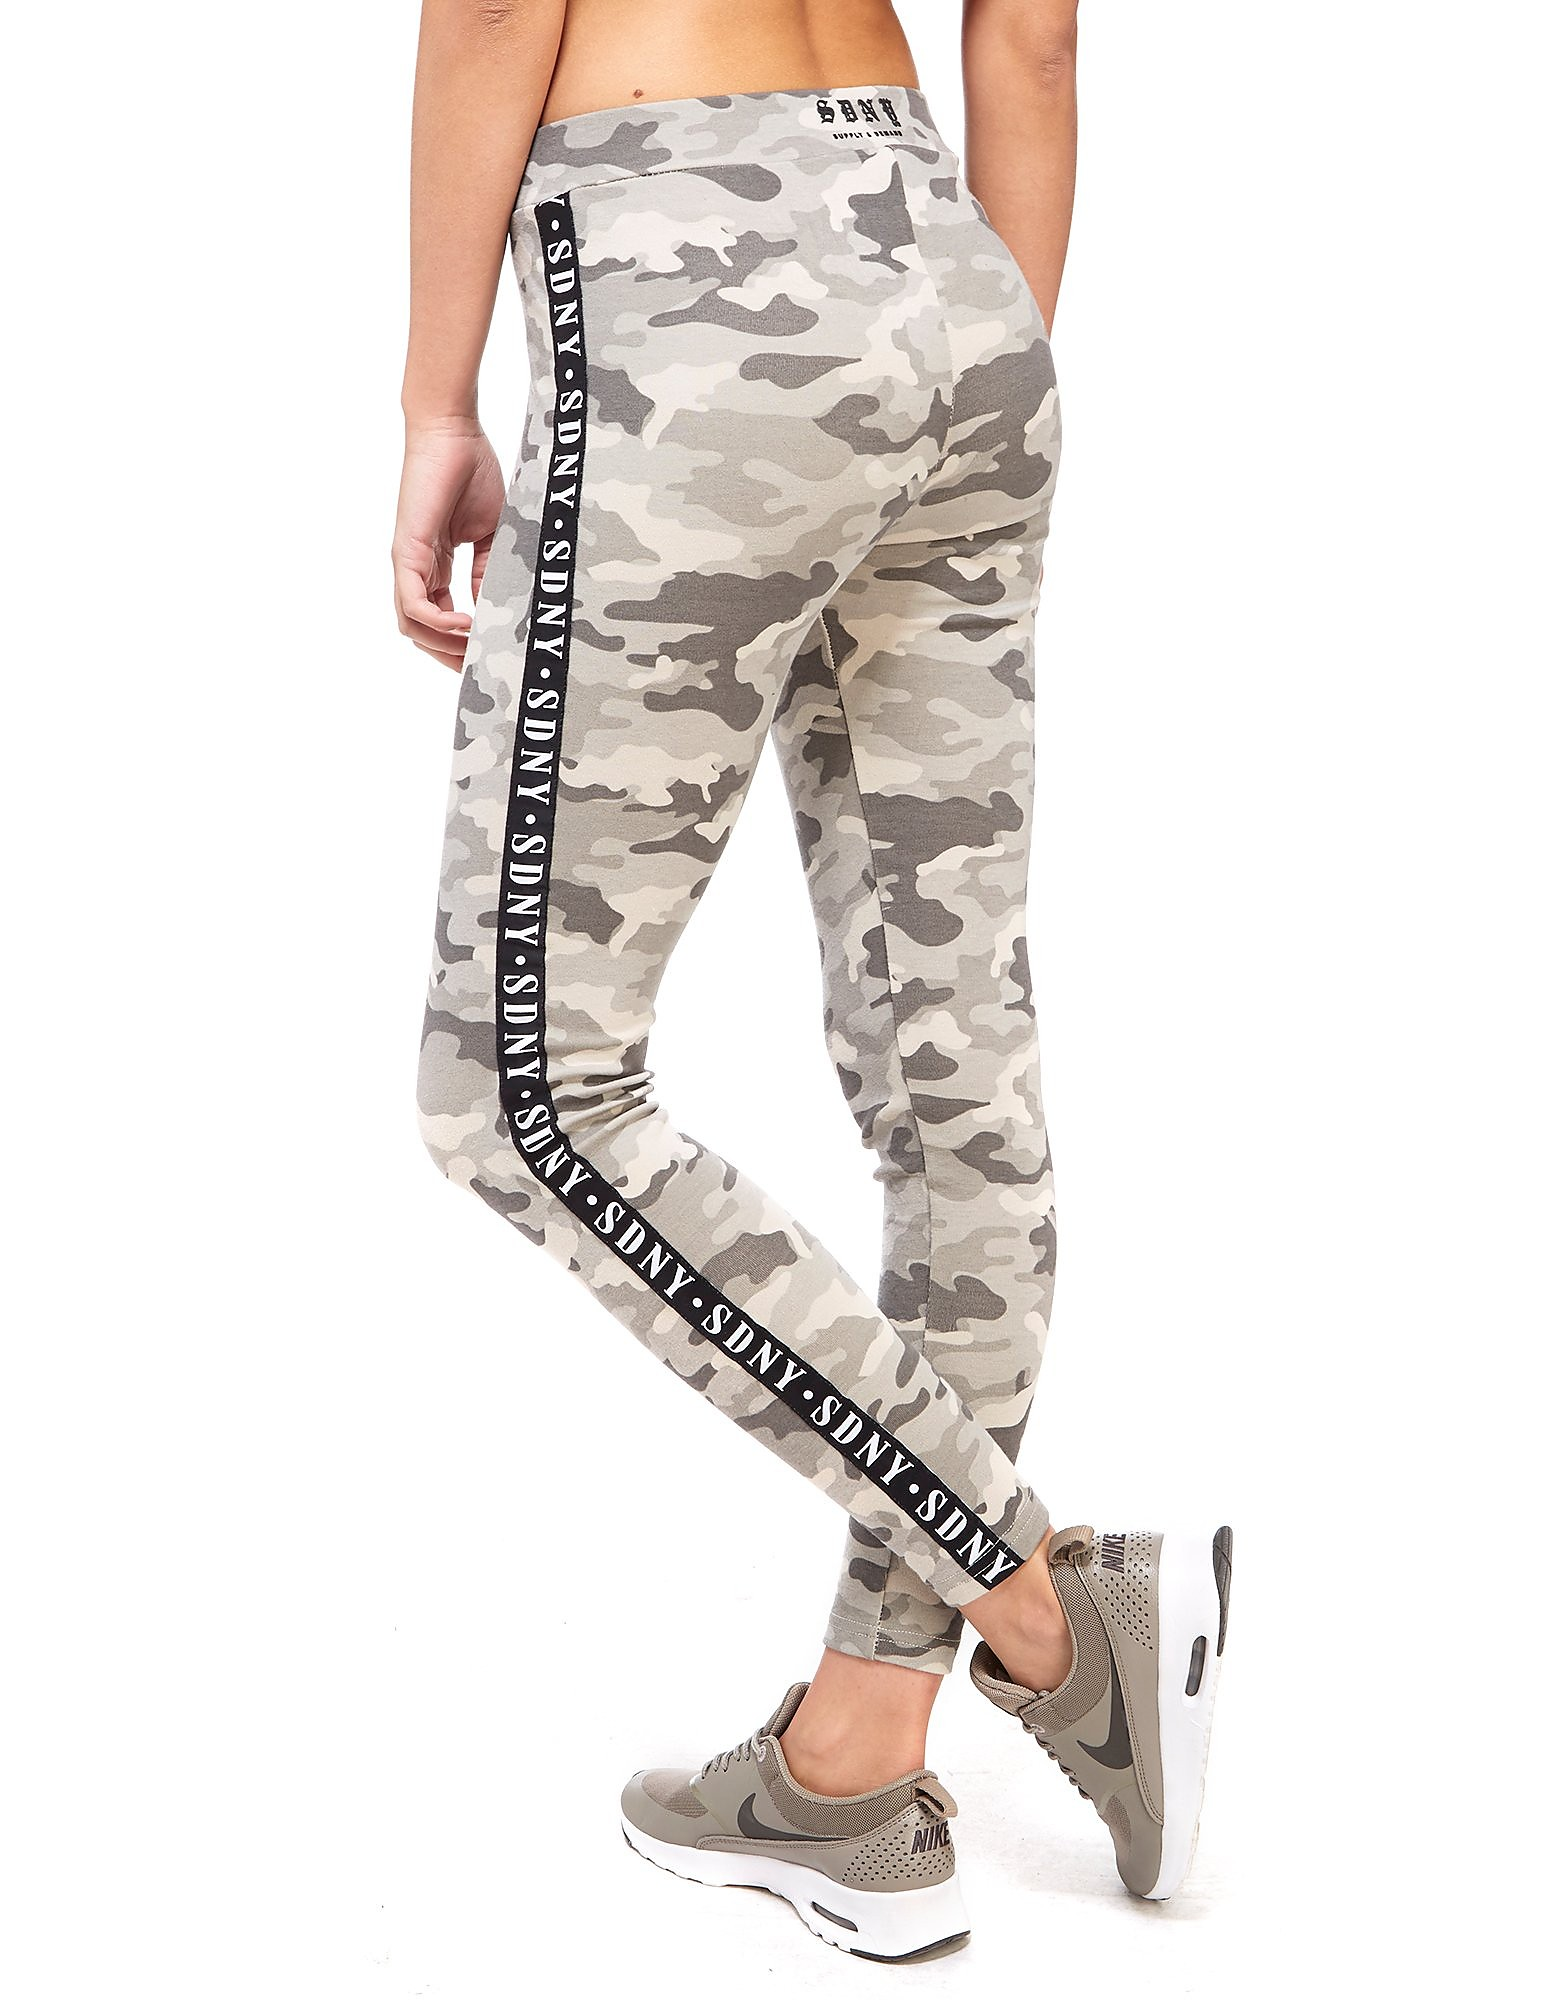 Supply & Demand Camo Leggings